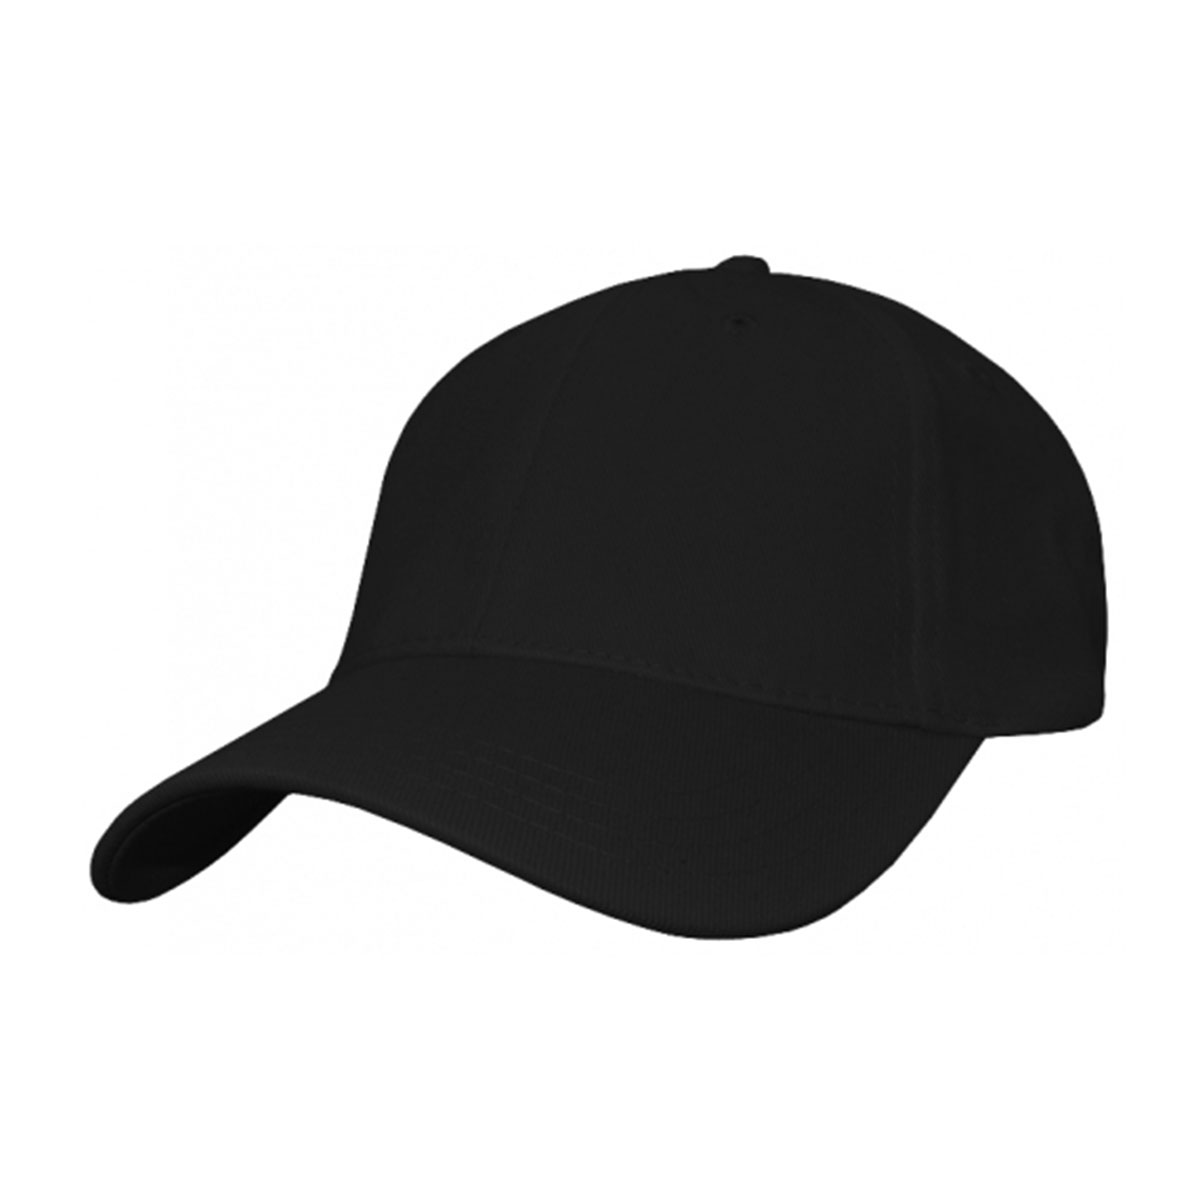 Heavy Cotton Spandex Fitted Cap-Black